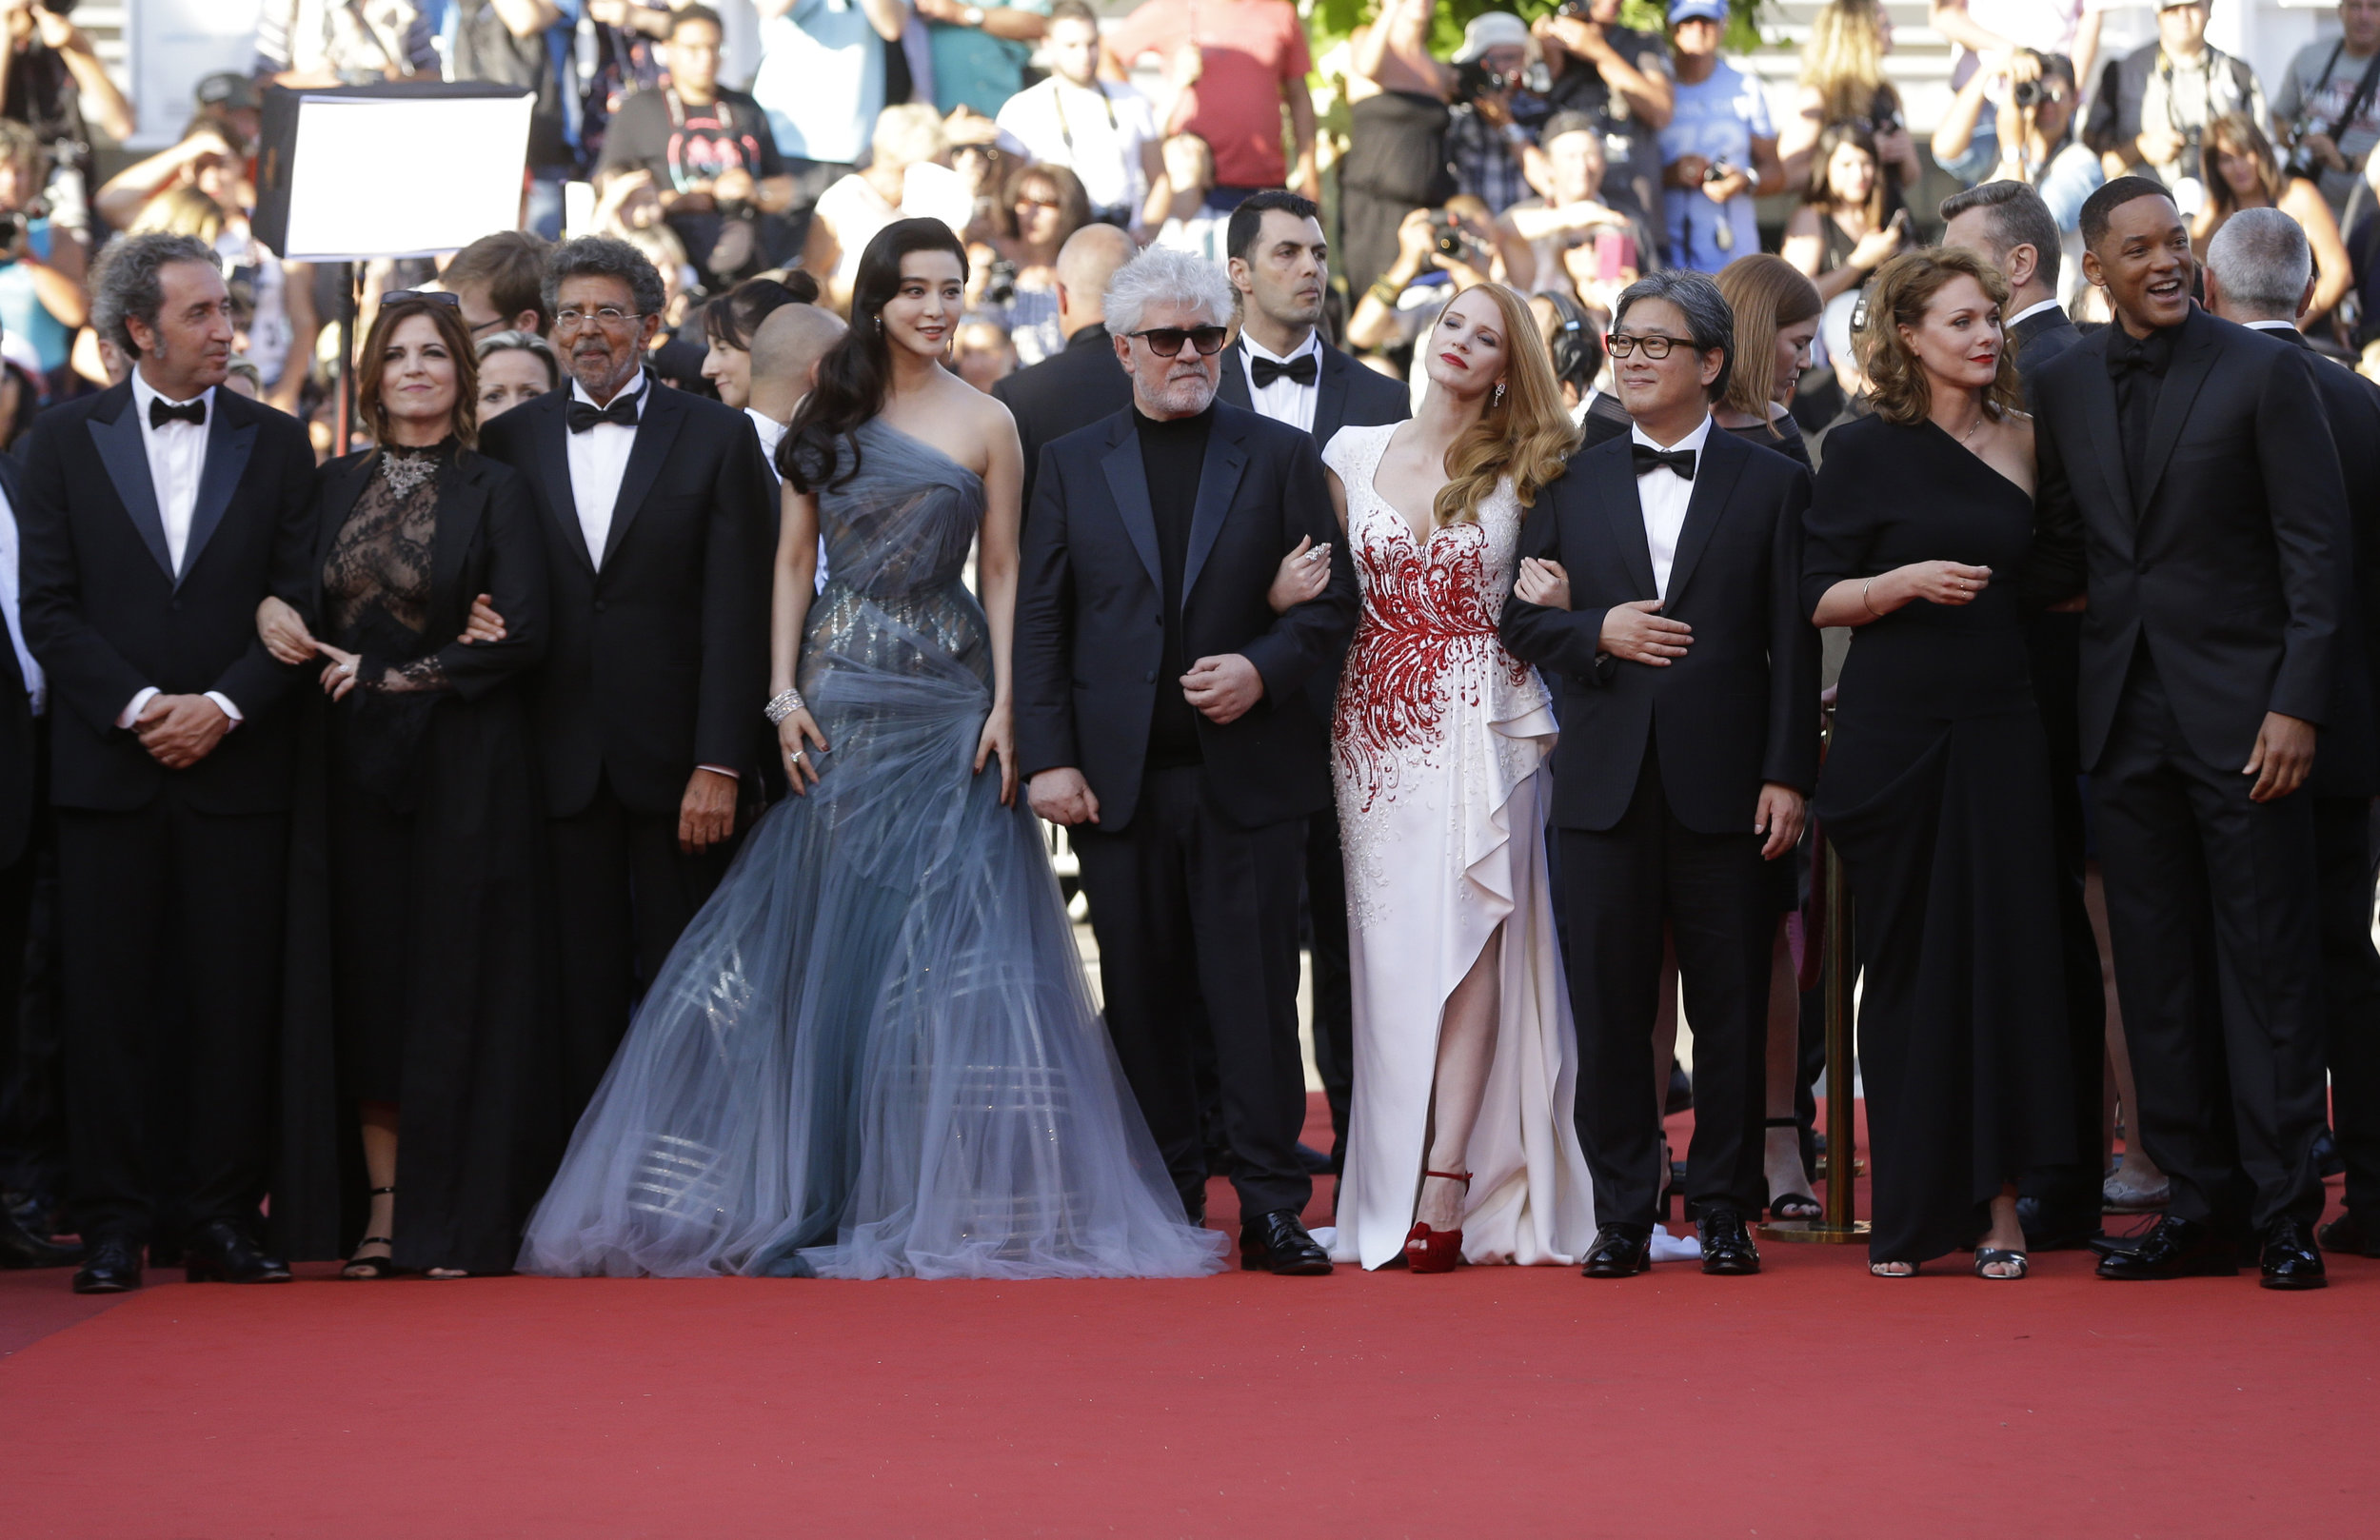 From left to right, the Jury included Paolo Sorrentino, Agnès Jaoui, Gabriel Yared, Fan Bingbing, President Pedro Almodóvar, Jessica Chastain, Park Chan-wook, Maren Ade, and Will Smith.